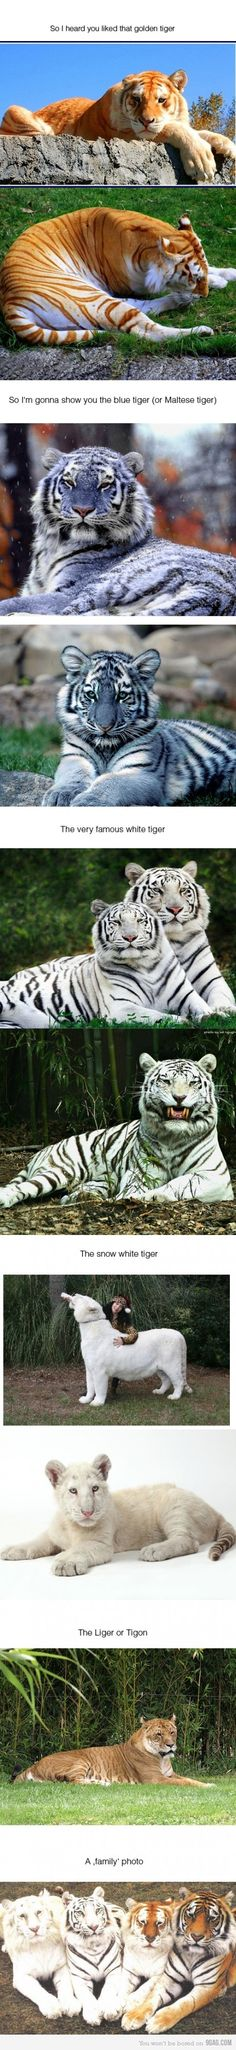 On my phone this is too small to read but I like the pic of the four tigers at the bottom